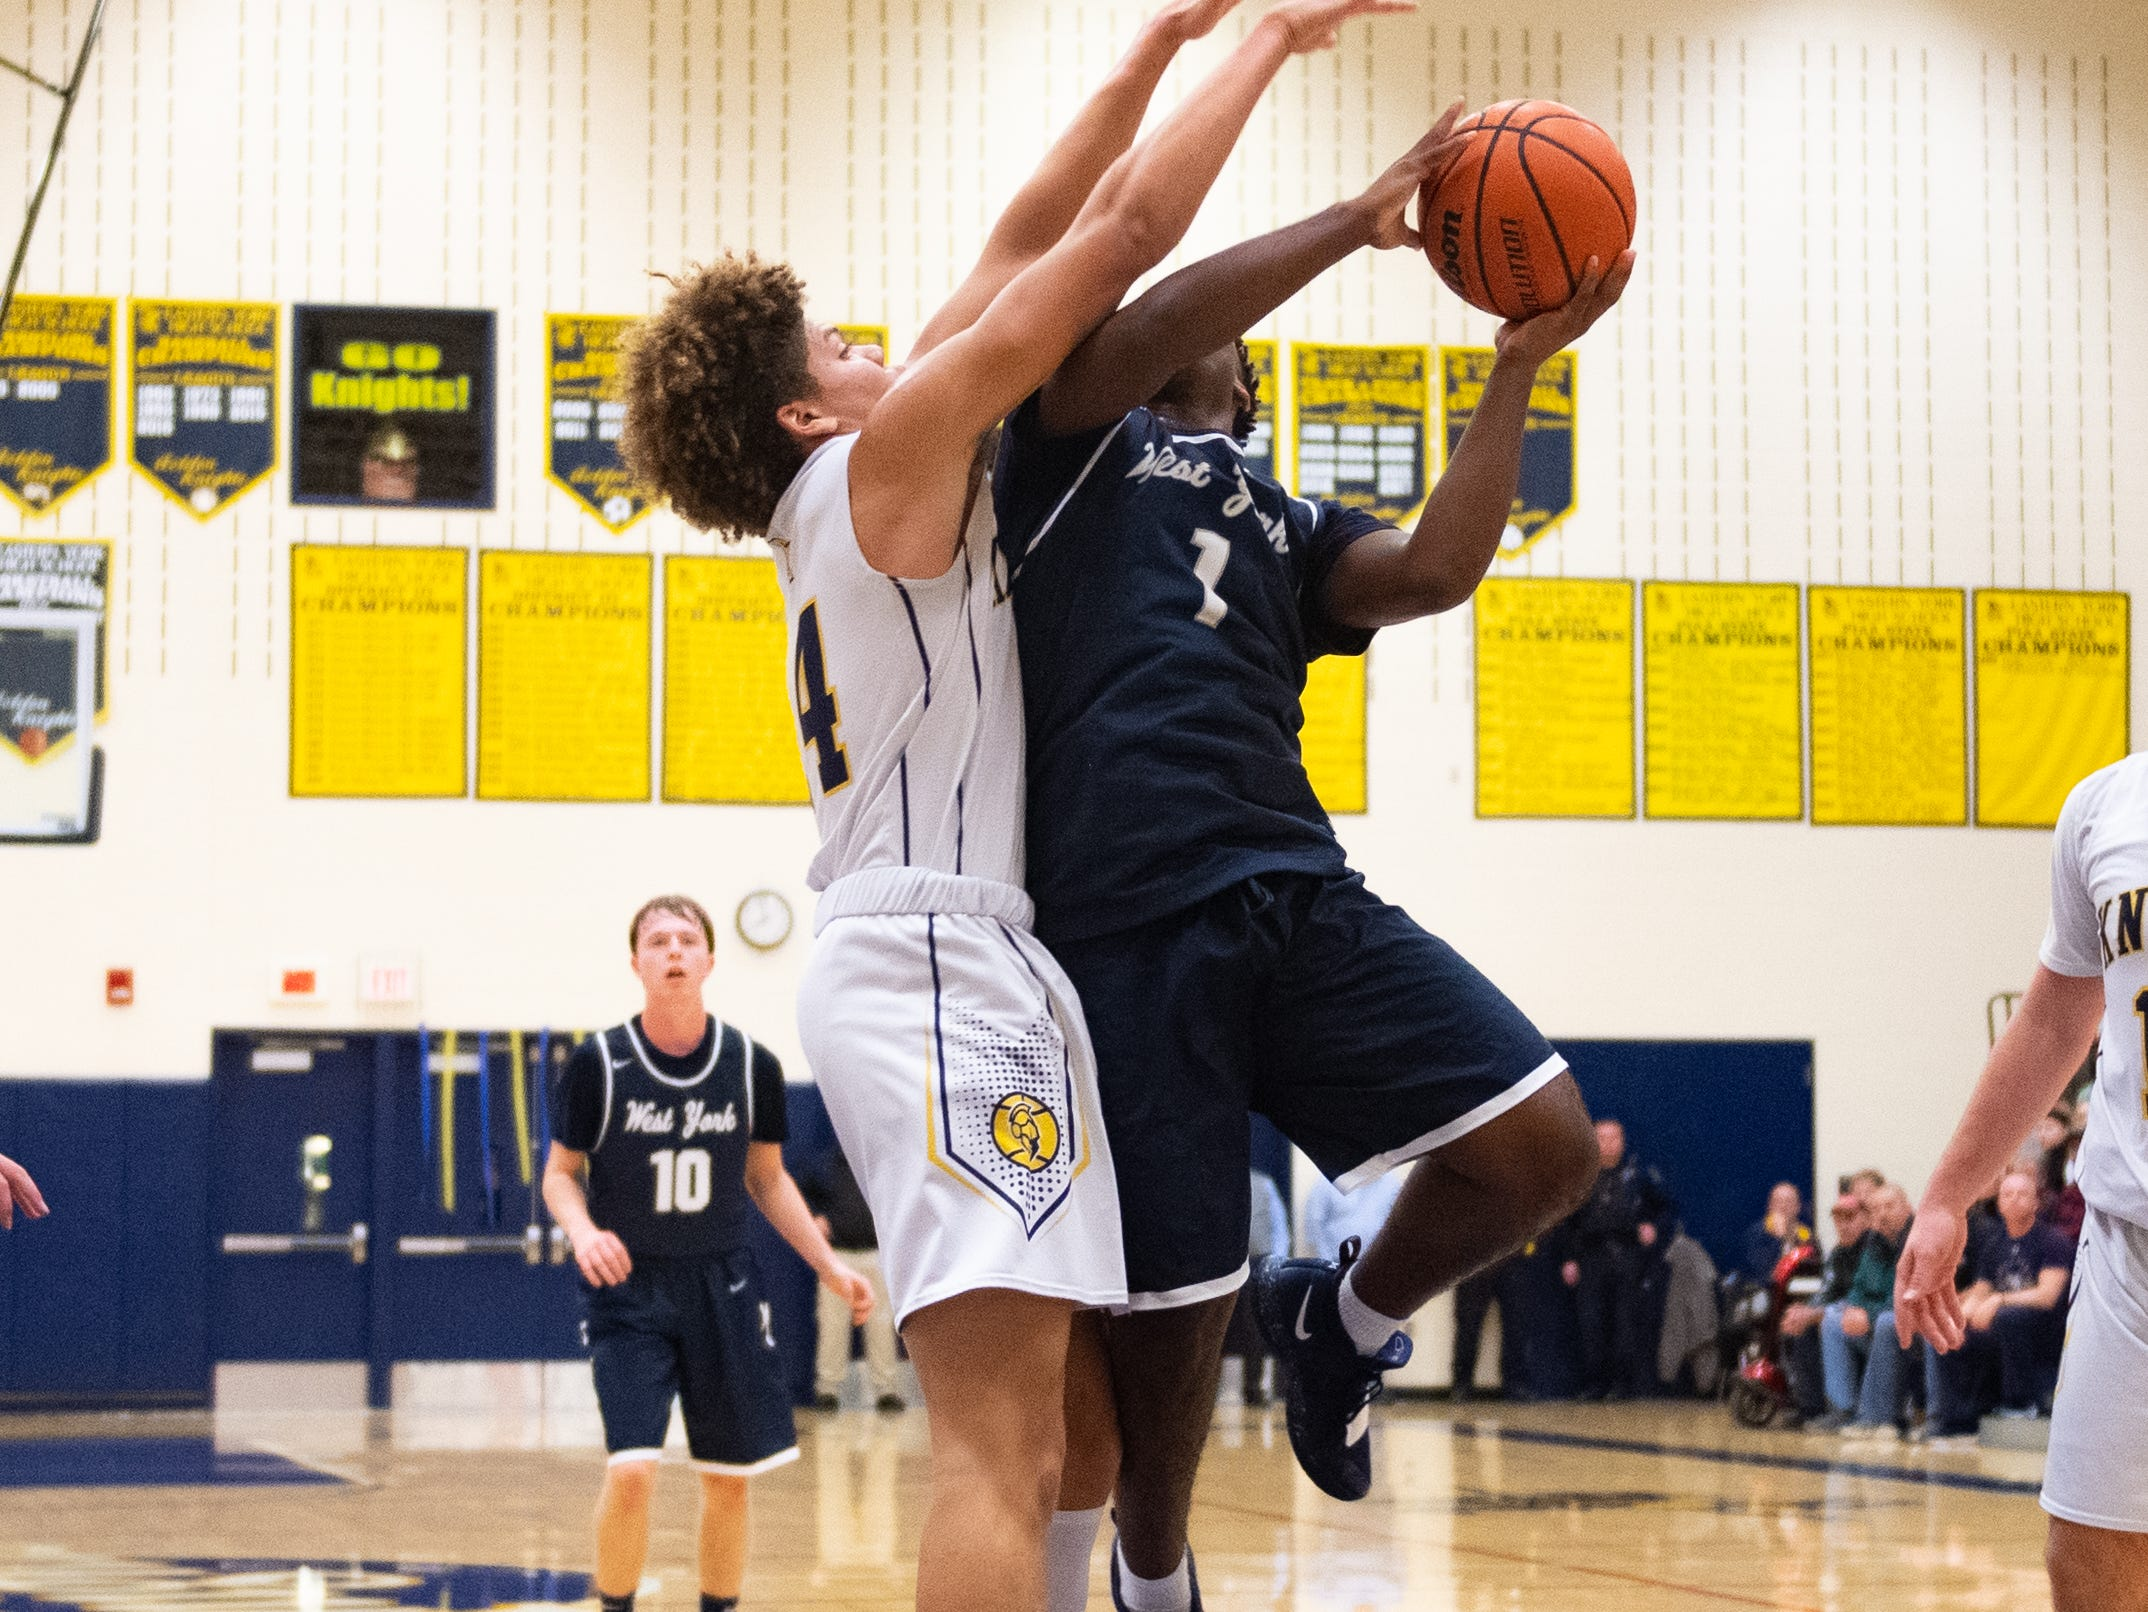 Demonte Martin (14) guards Kelvin Matthews (1) during the YAIAA boys' basketball game between Eastern York and West York, Friday, January 25, 2019 at Eastern York High School. The Golden Knights defeated the Bulldogs 59 to 55.